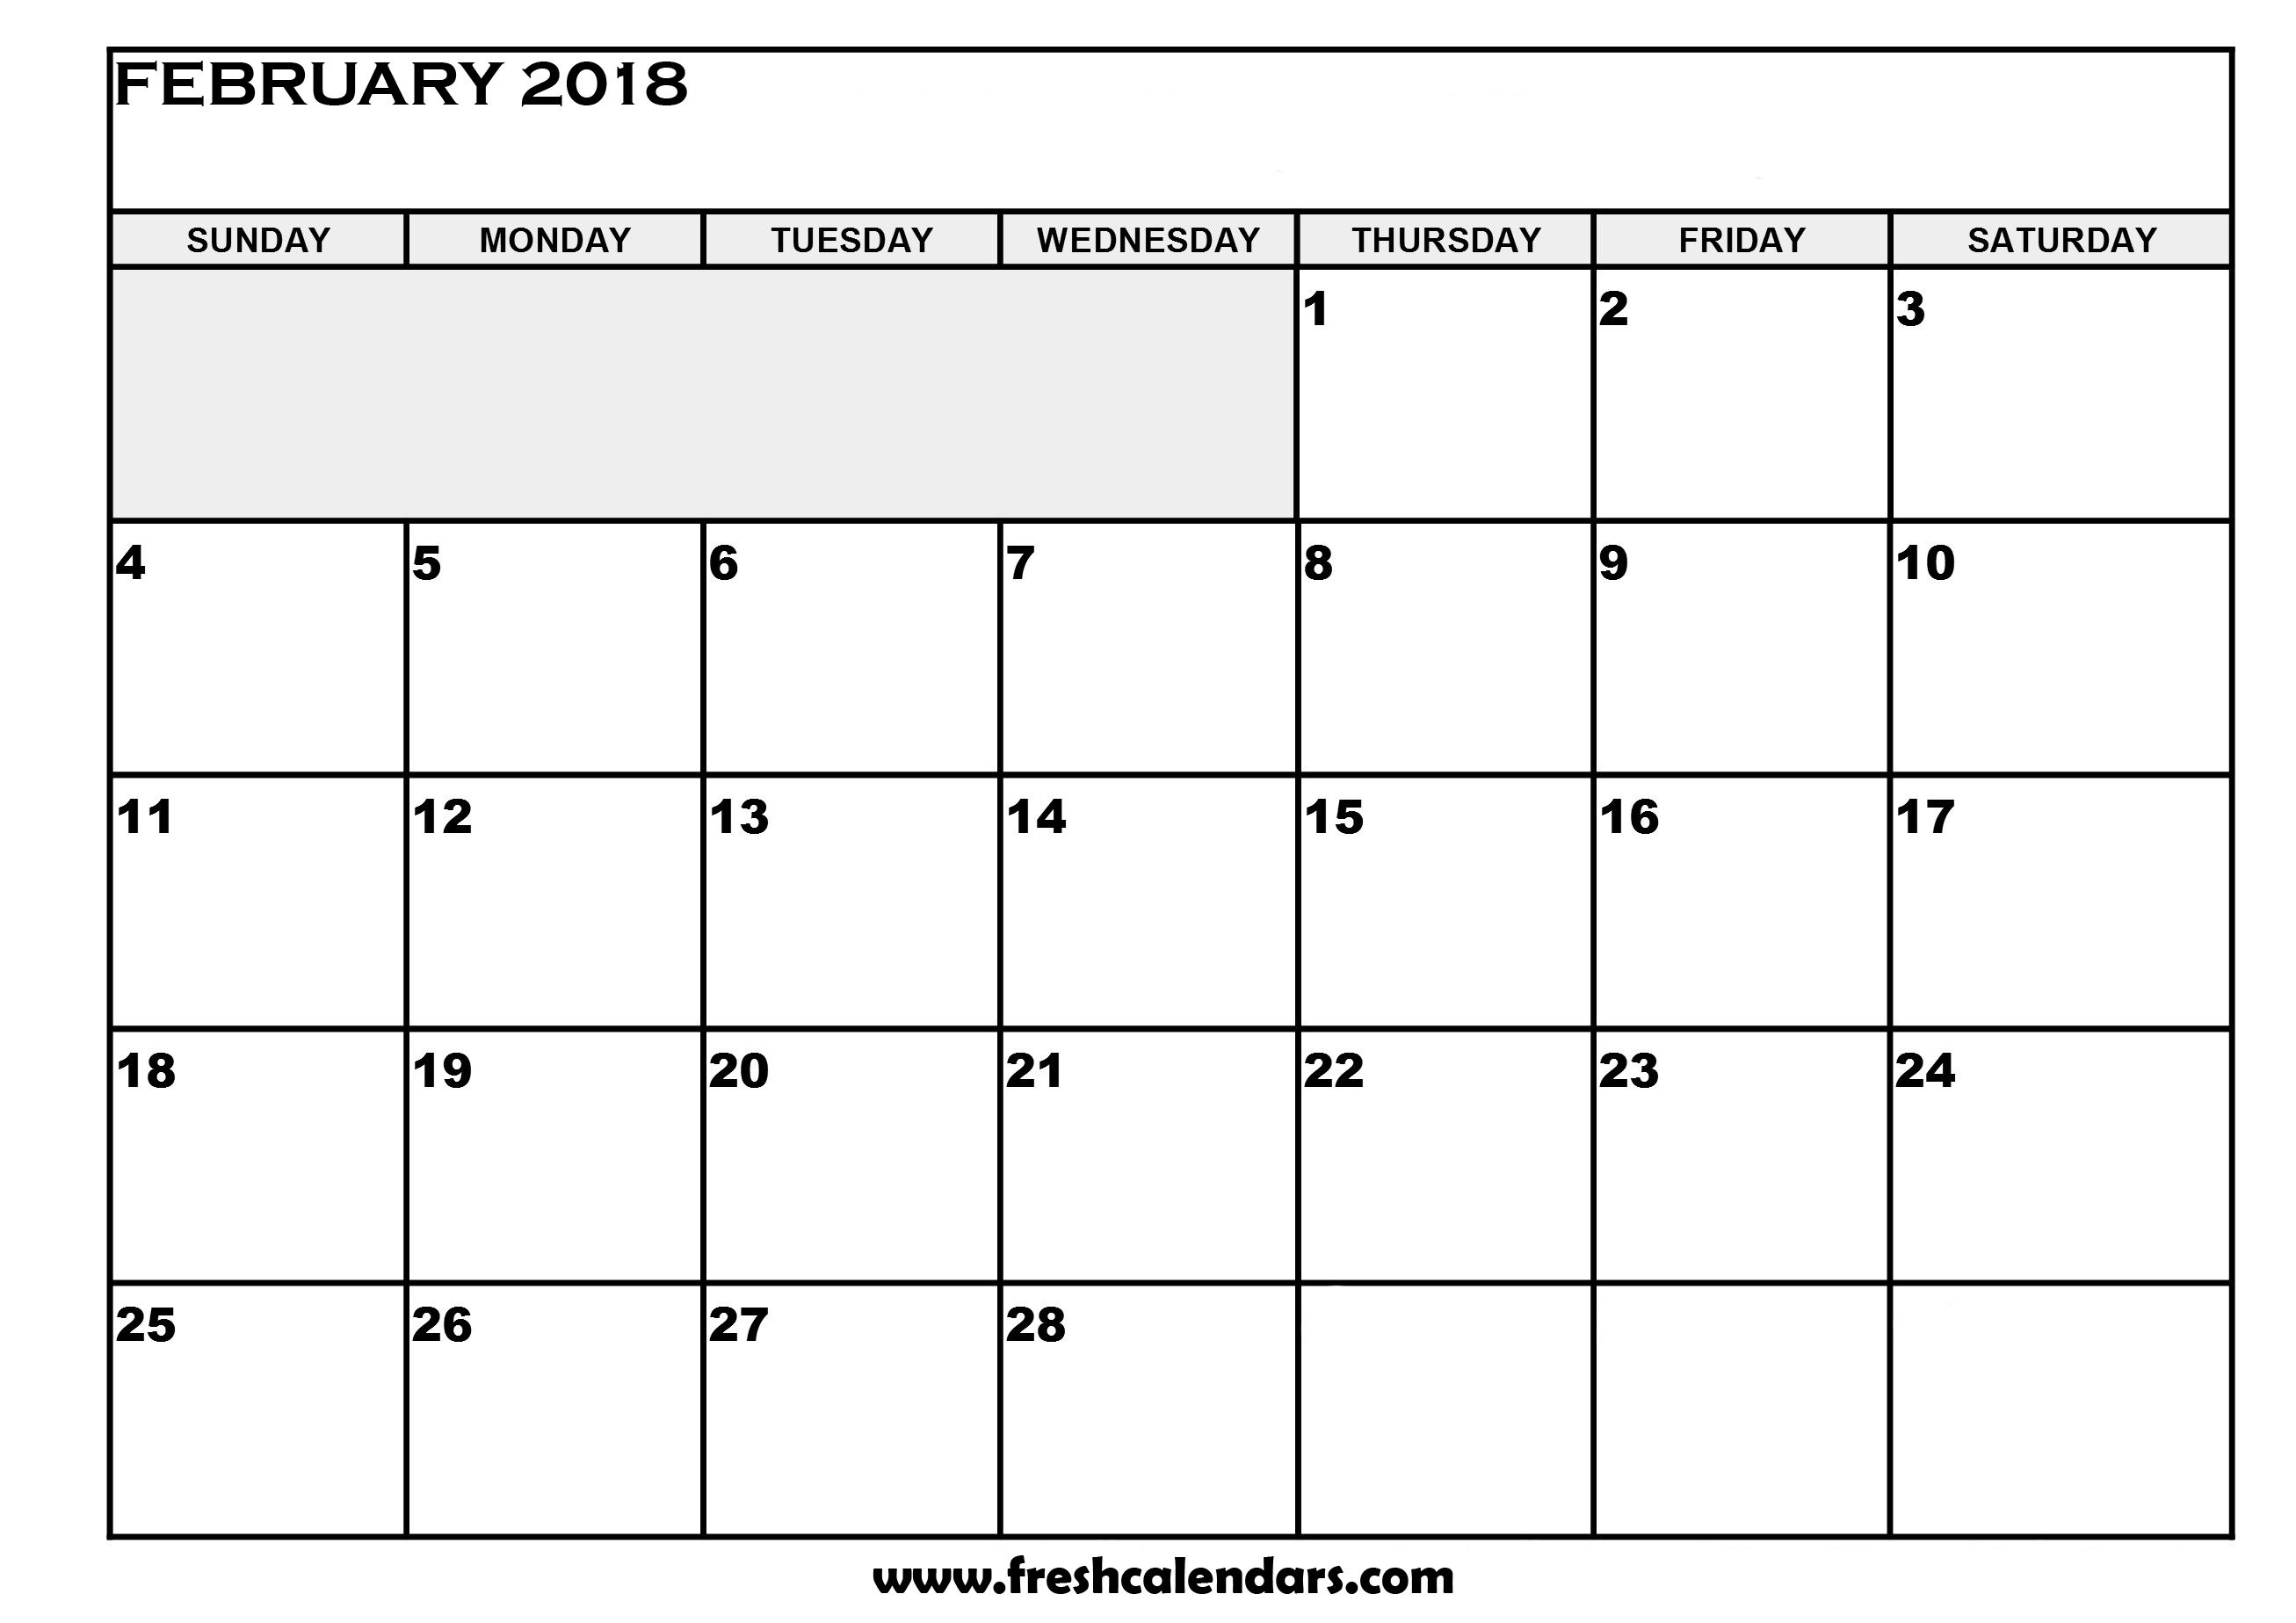 Calendar Spreadsheet 2018 With February 2018 Calendar Printable Templates